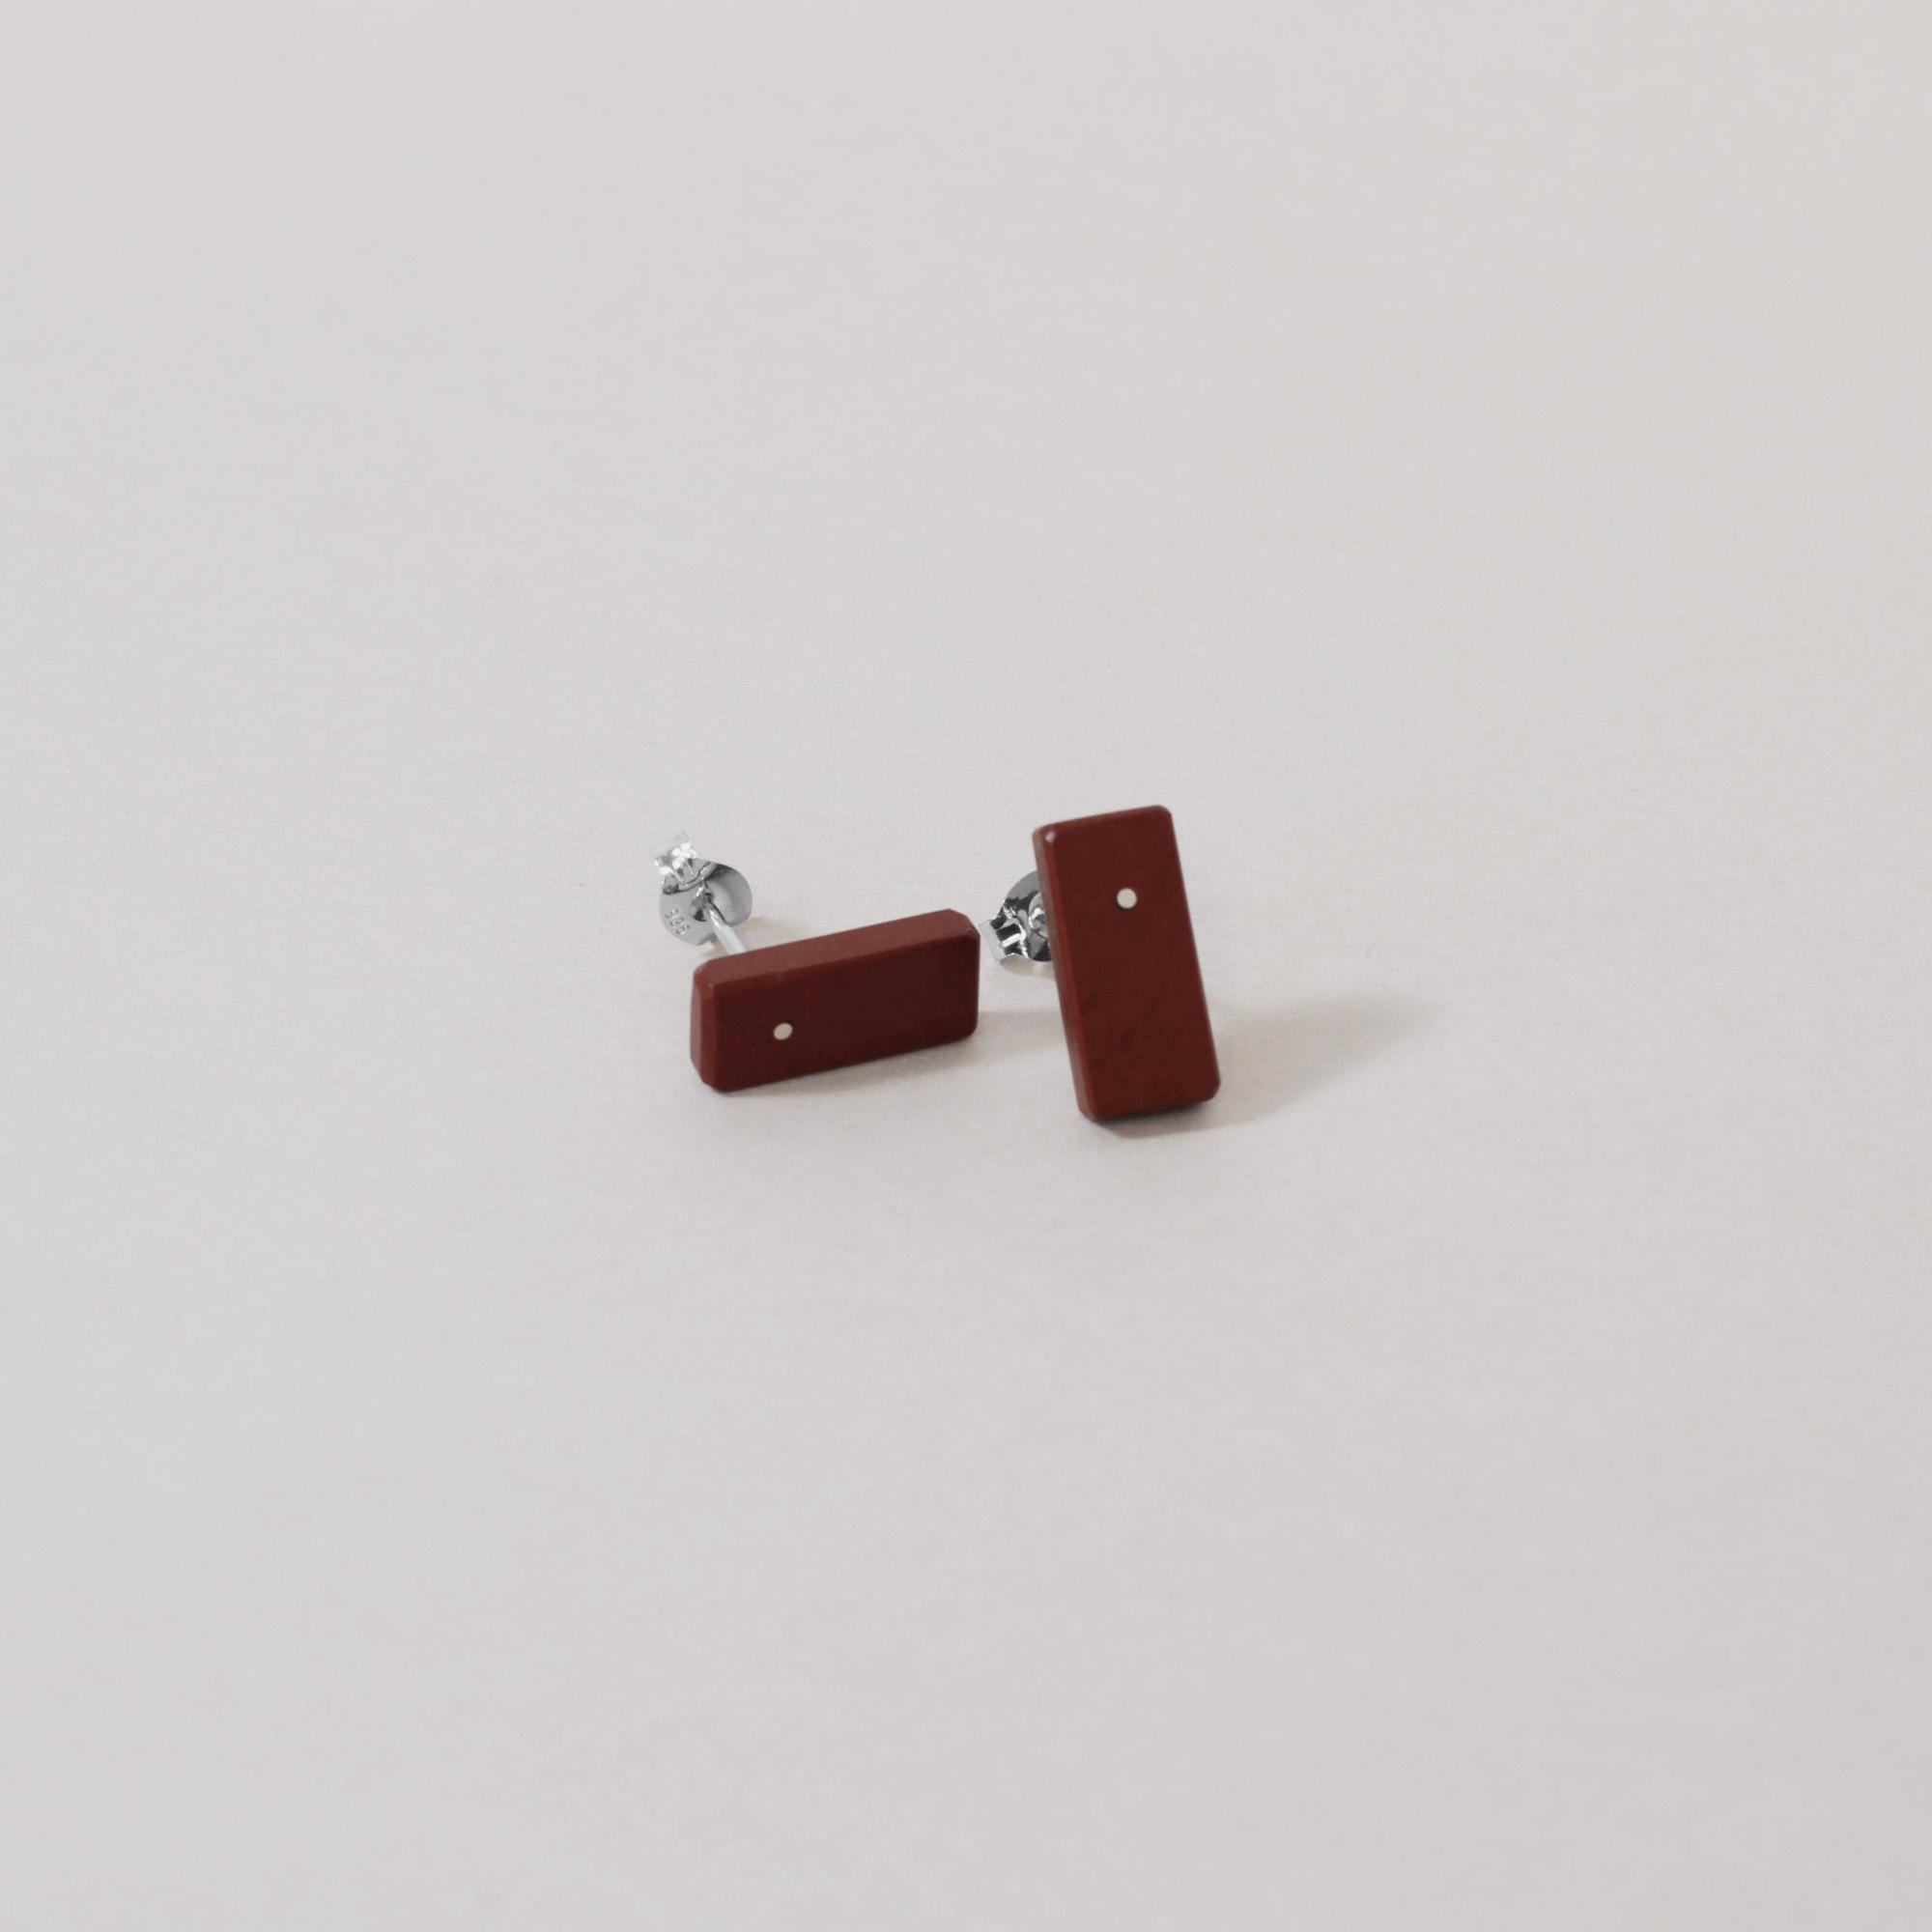 Pakohe and Sterling Silver Elongated Studs made by Hannah Sheehan